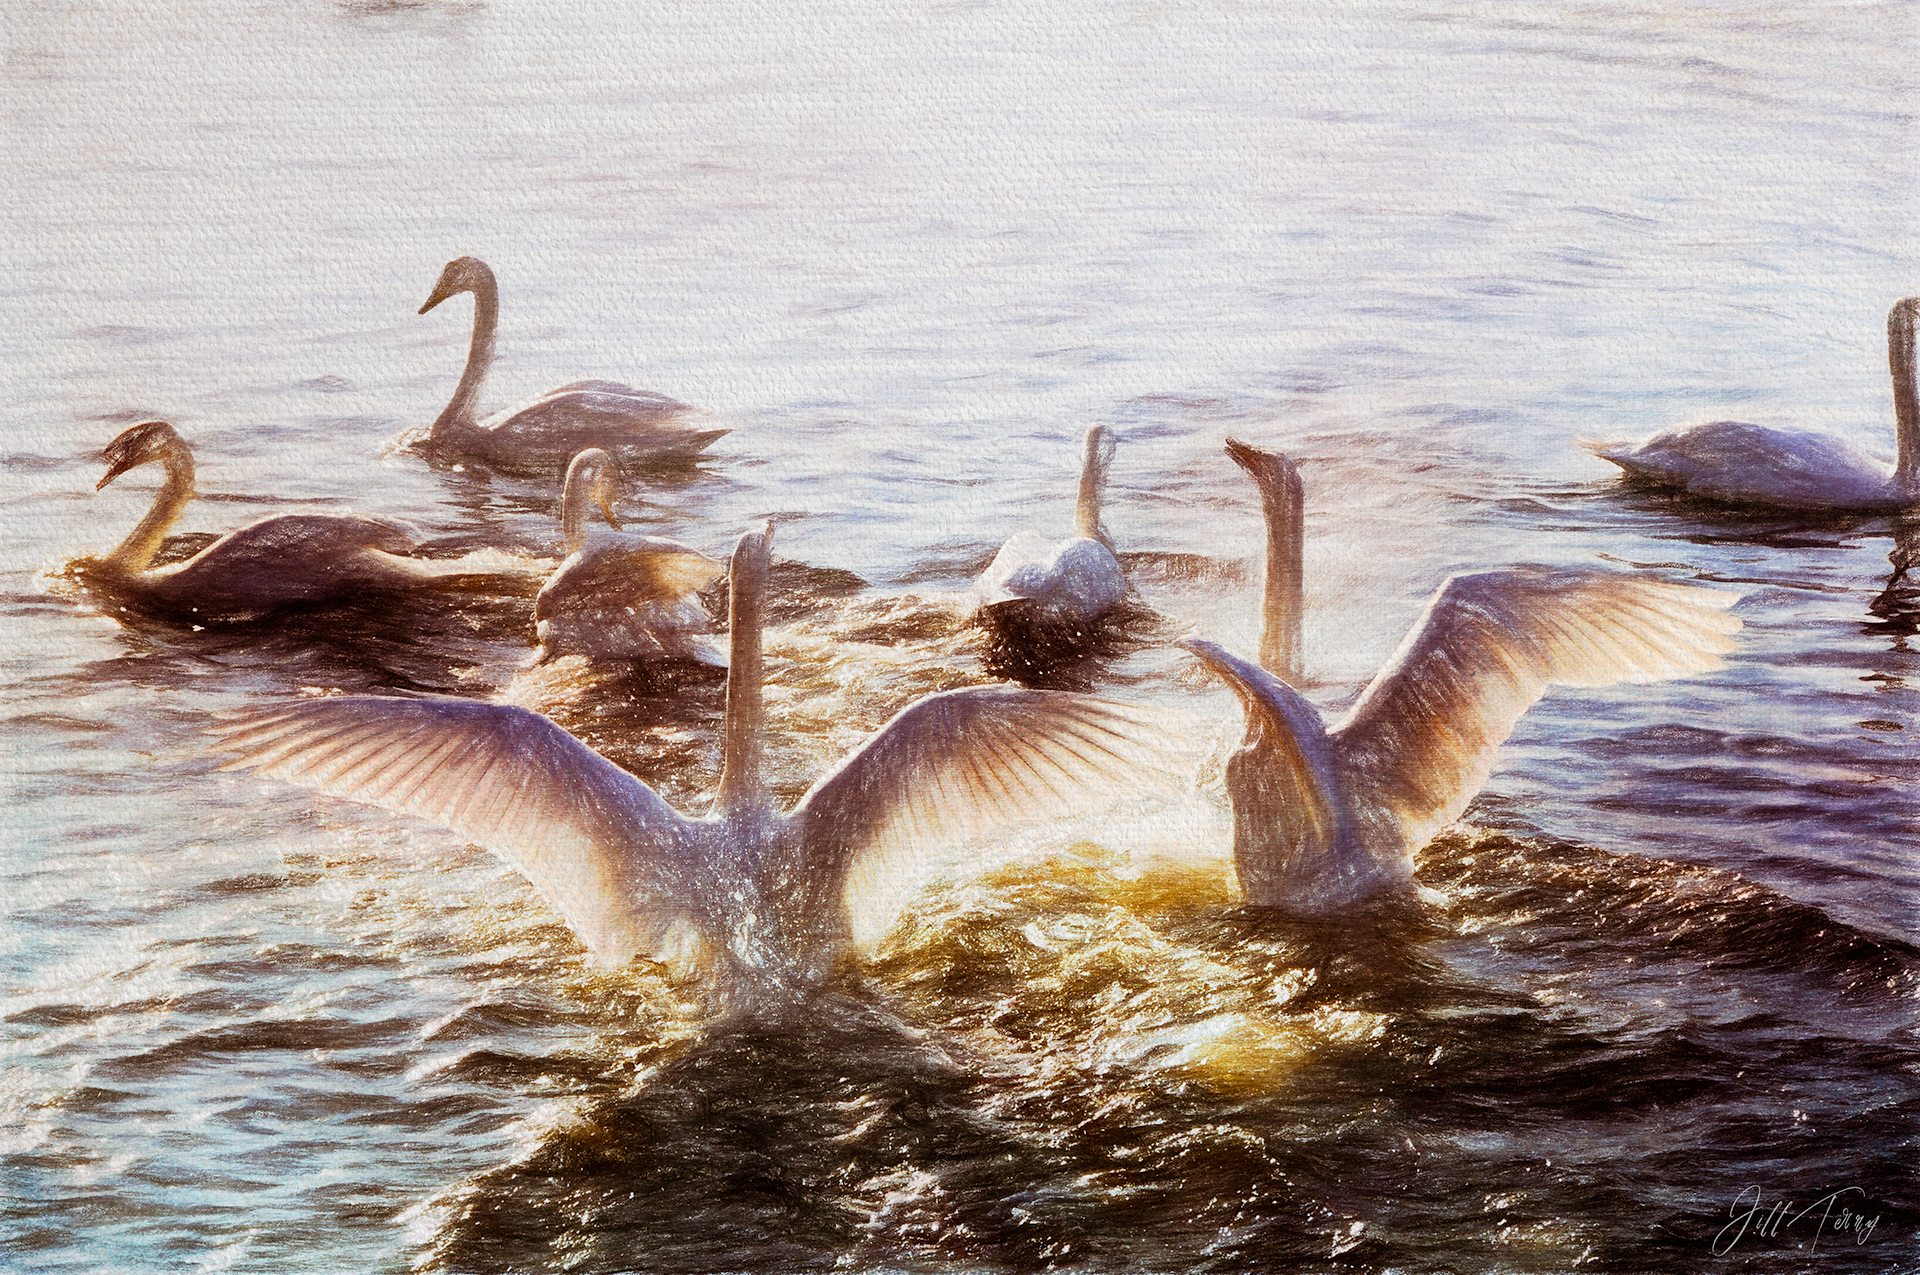 Swan Lake - a Painting of Swans